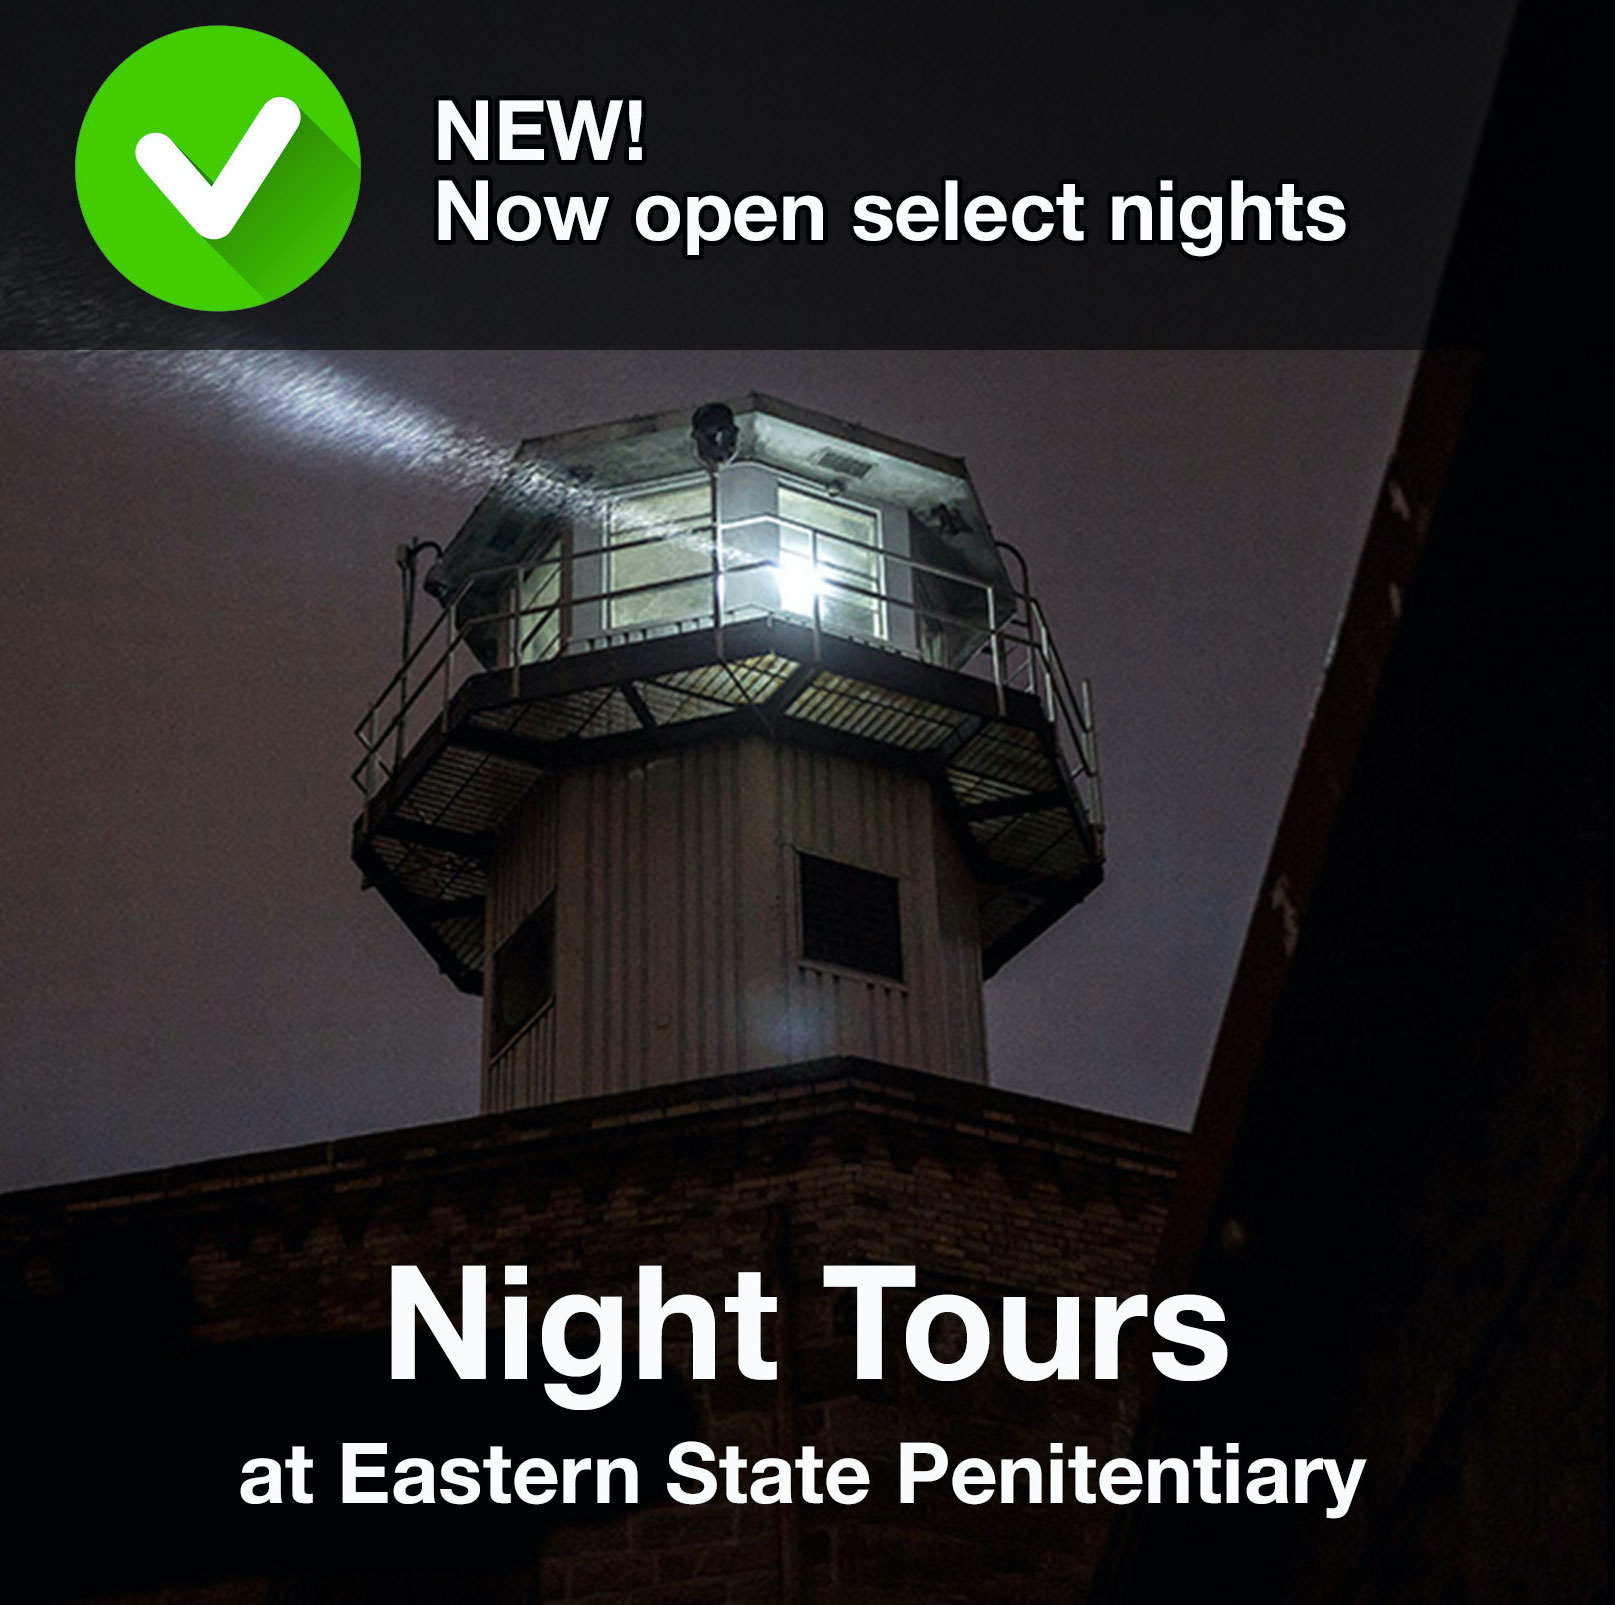 Night Tours are now open on select nights.